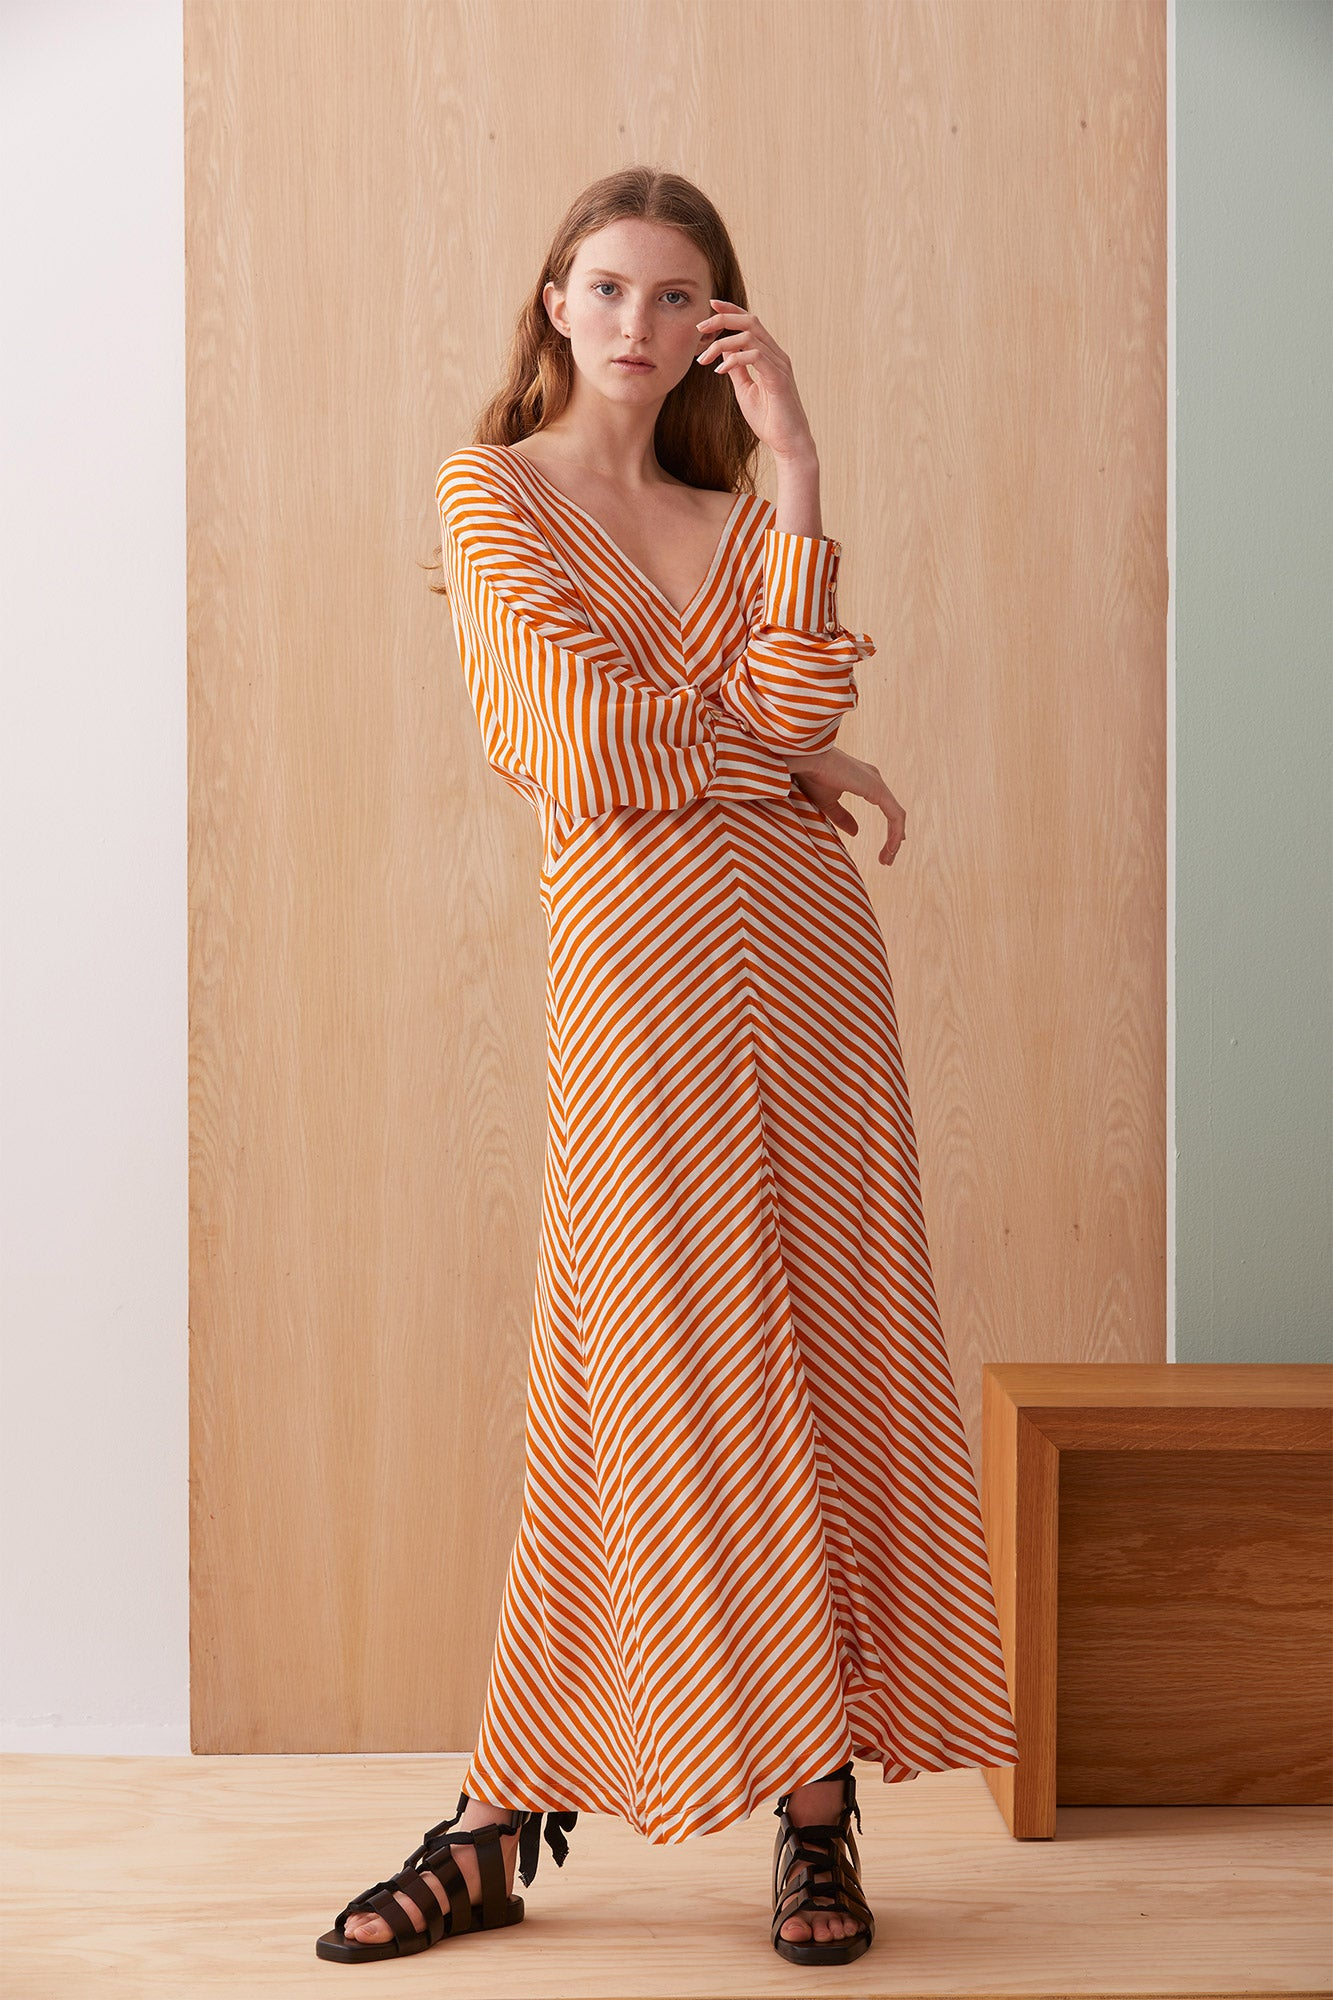 NZ Fashion Clothing Boutique gregorythelabel Gregory AW19 Piera Dress Mandarin Stripe Made in NZ